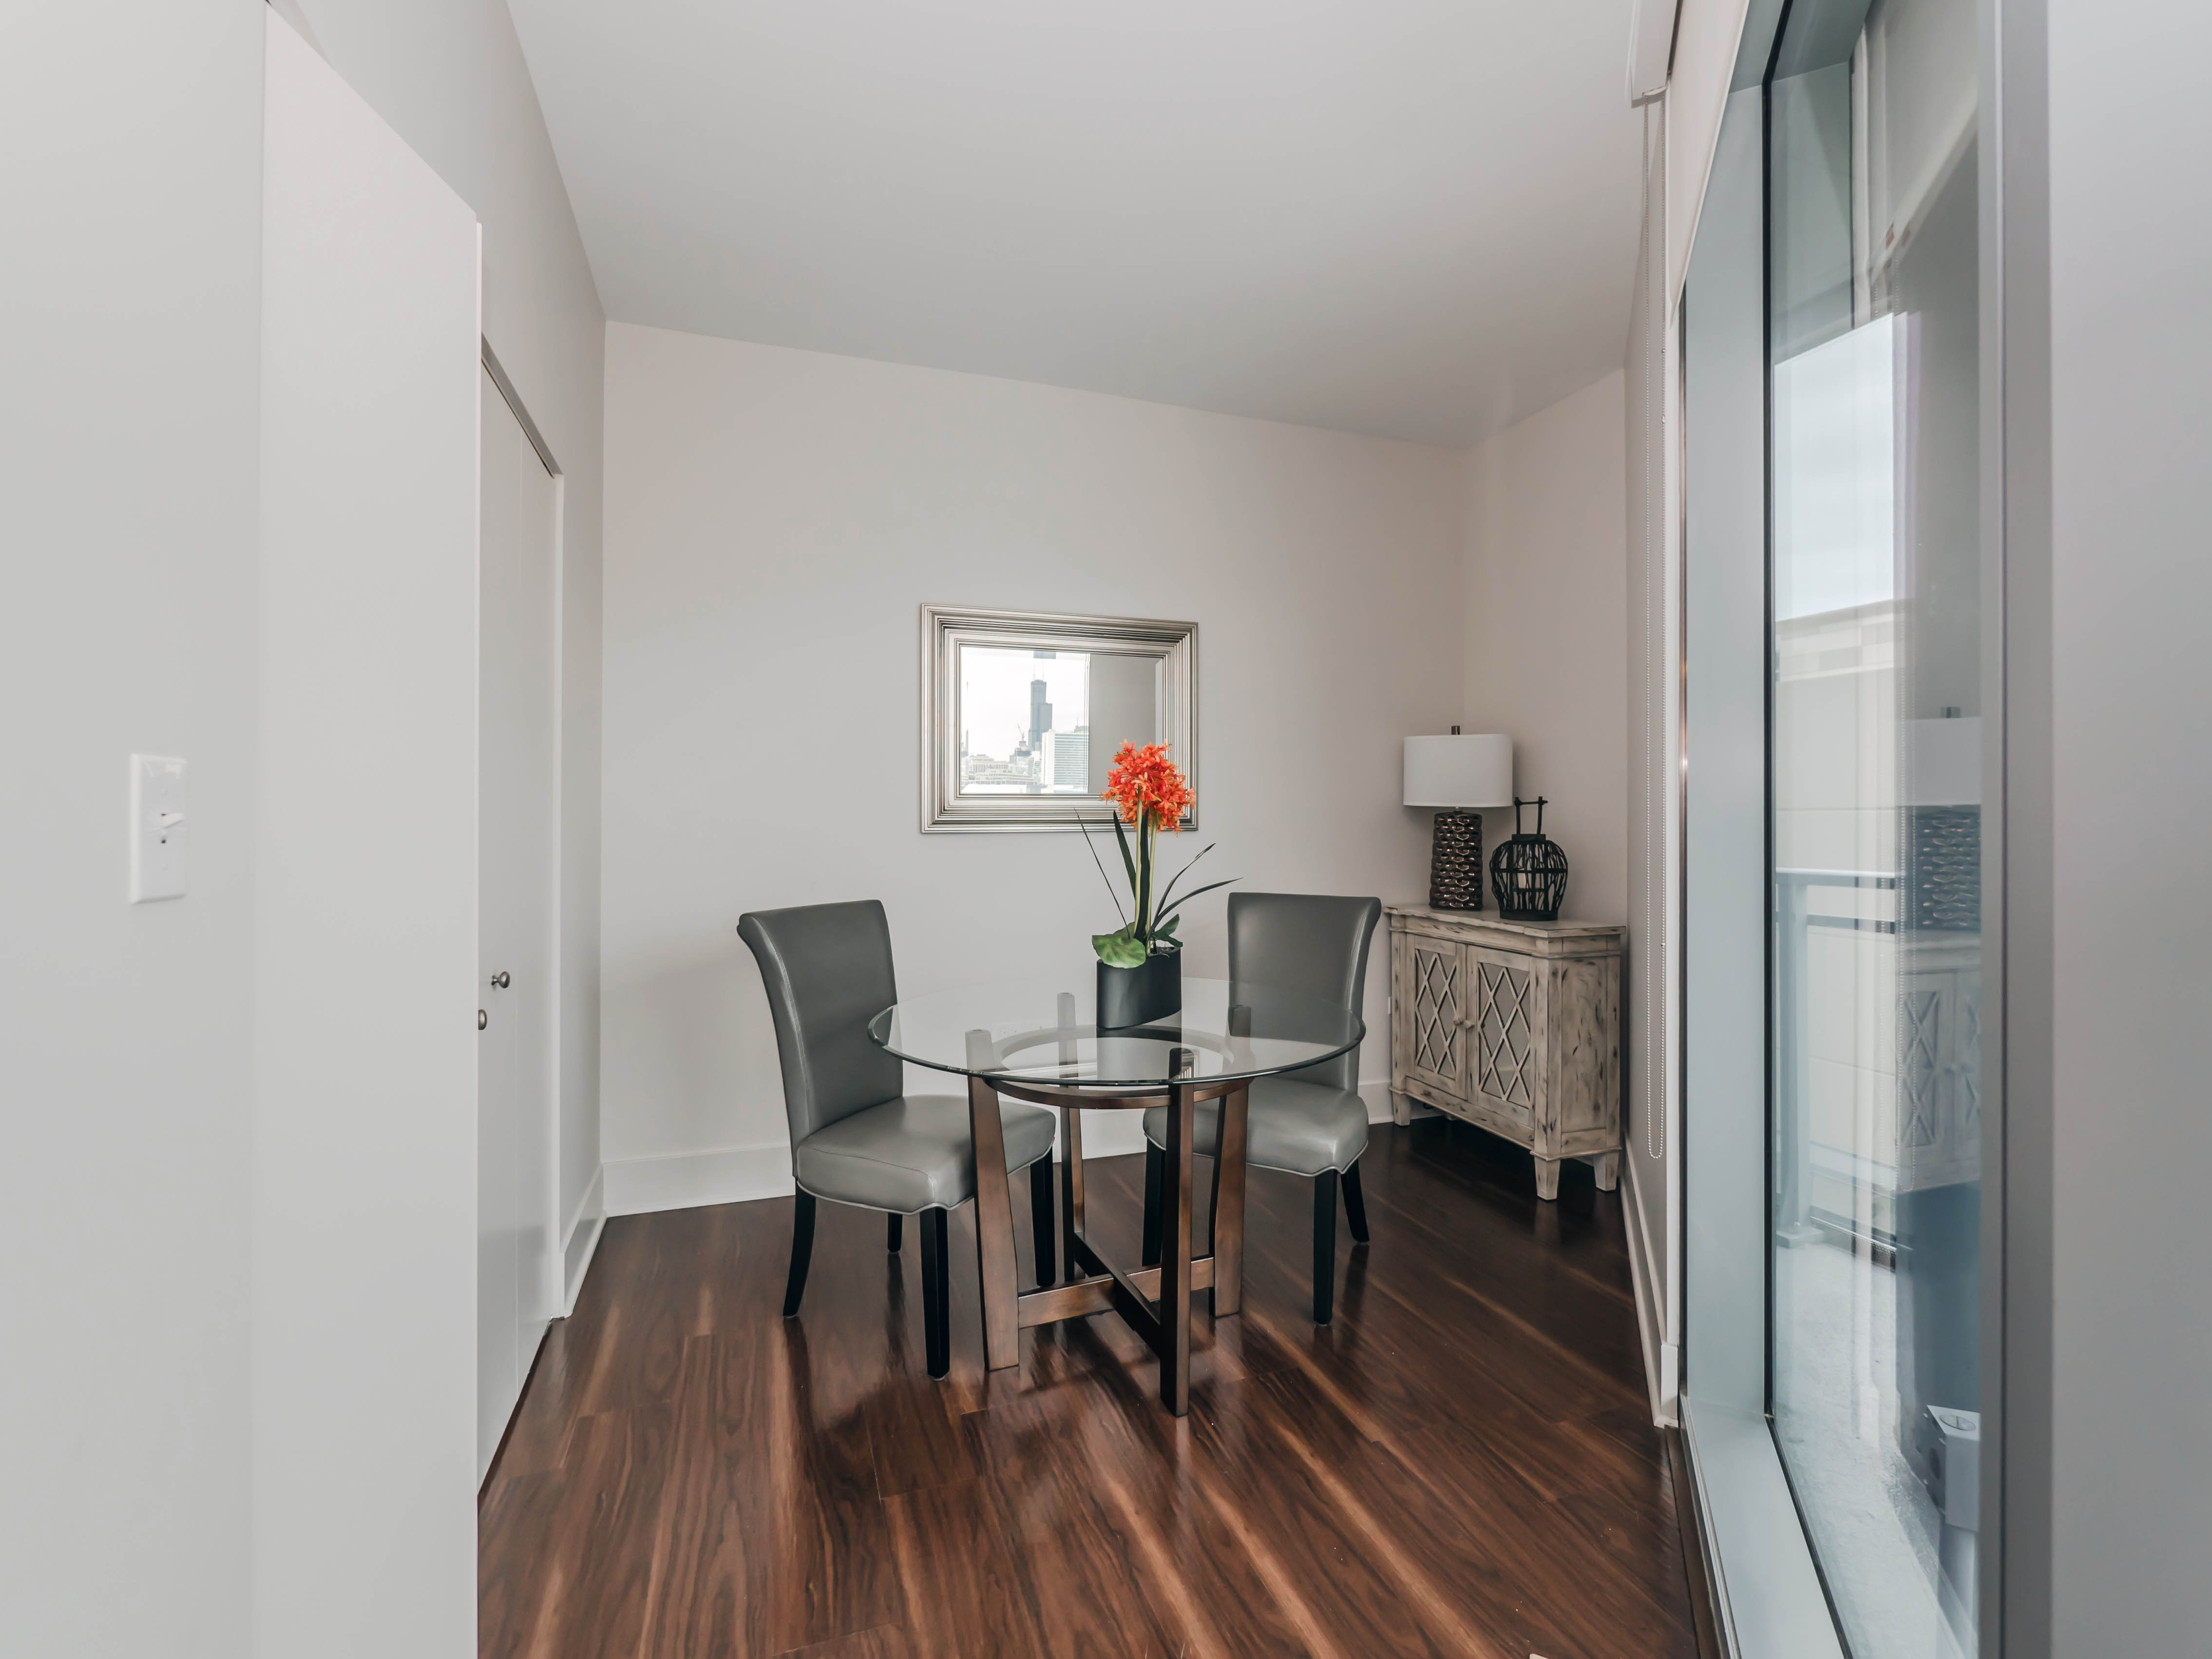 one bedroom with den. The den area is flexible  Tour a one bedroom plus at the new New City apartments YoChicago